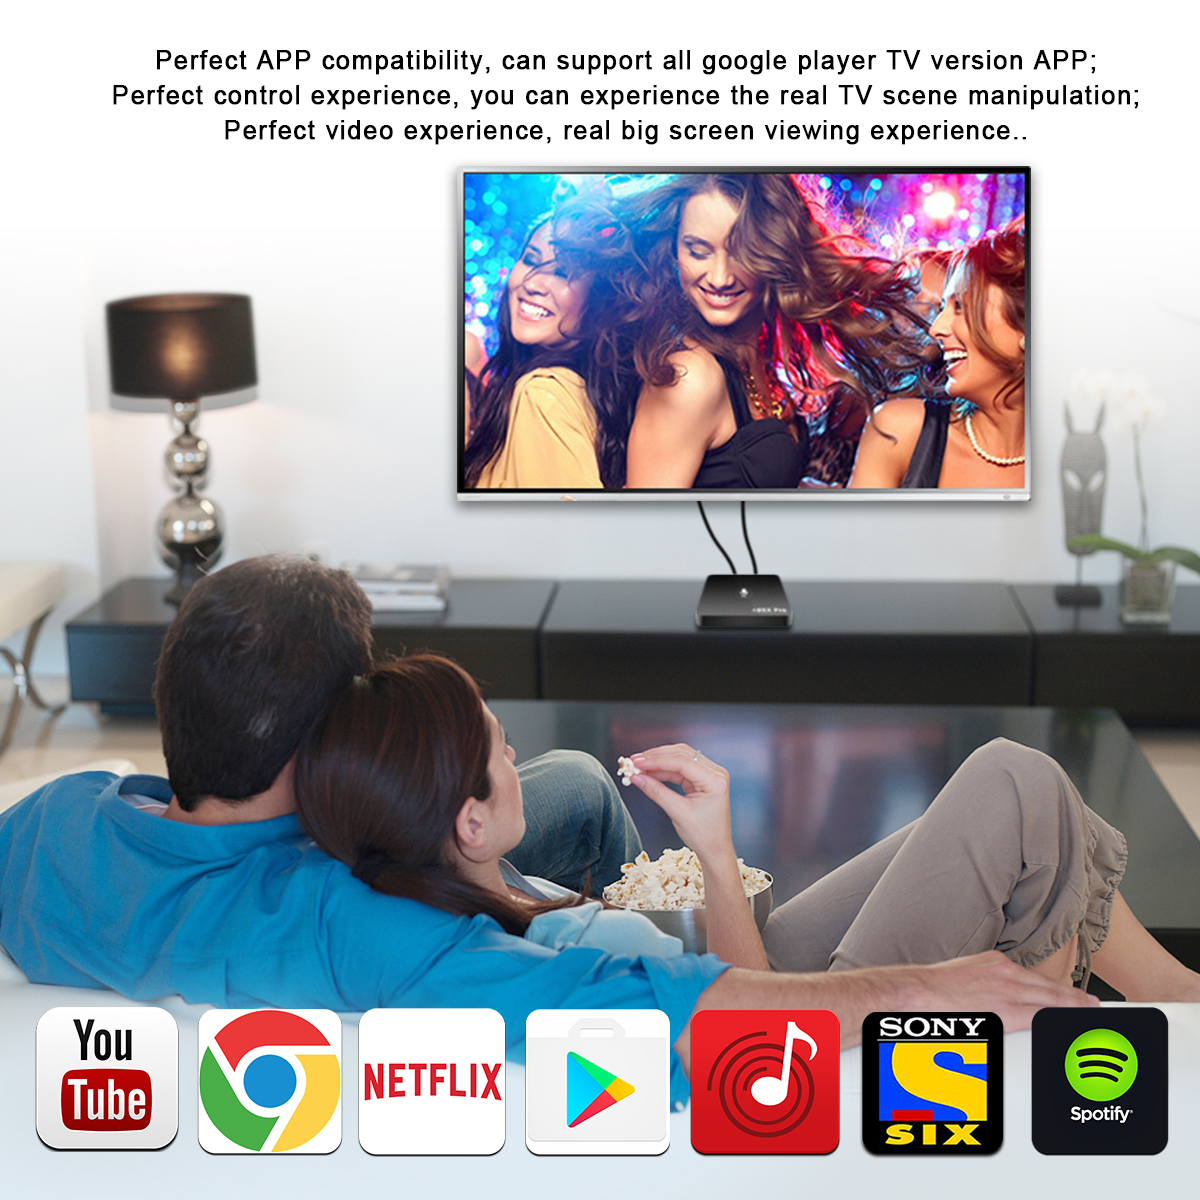 A95X Pro Amlogic S905W 2GB RAM 16GB ROM Android TV Box with Voice Control